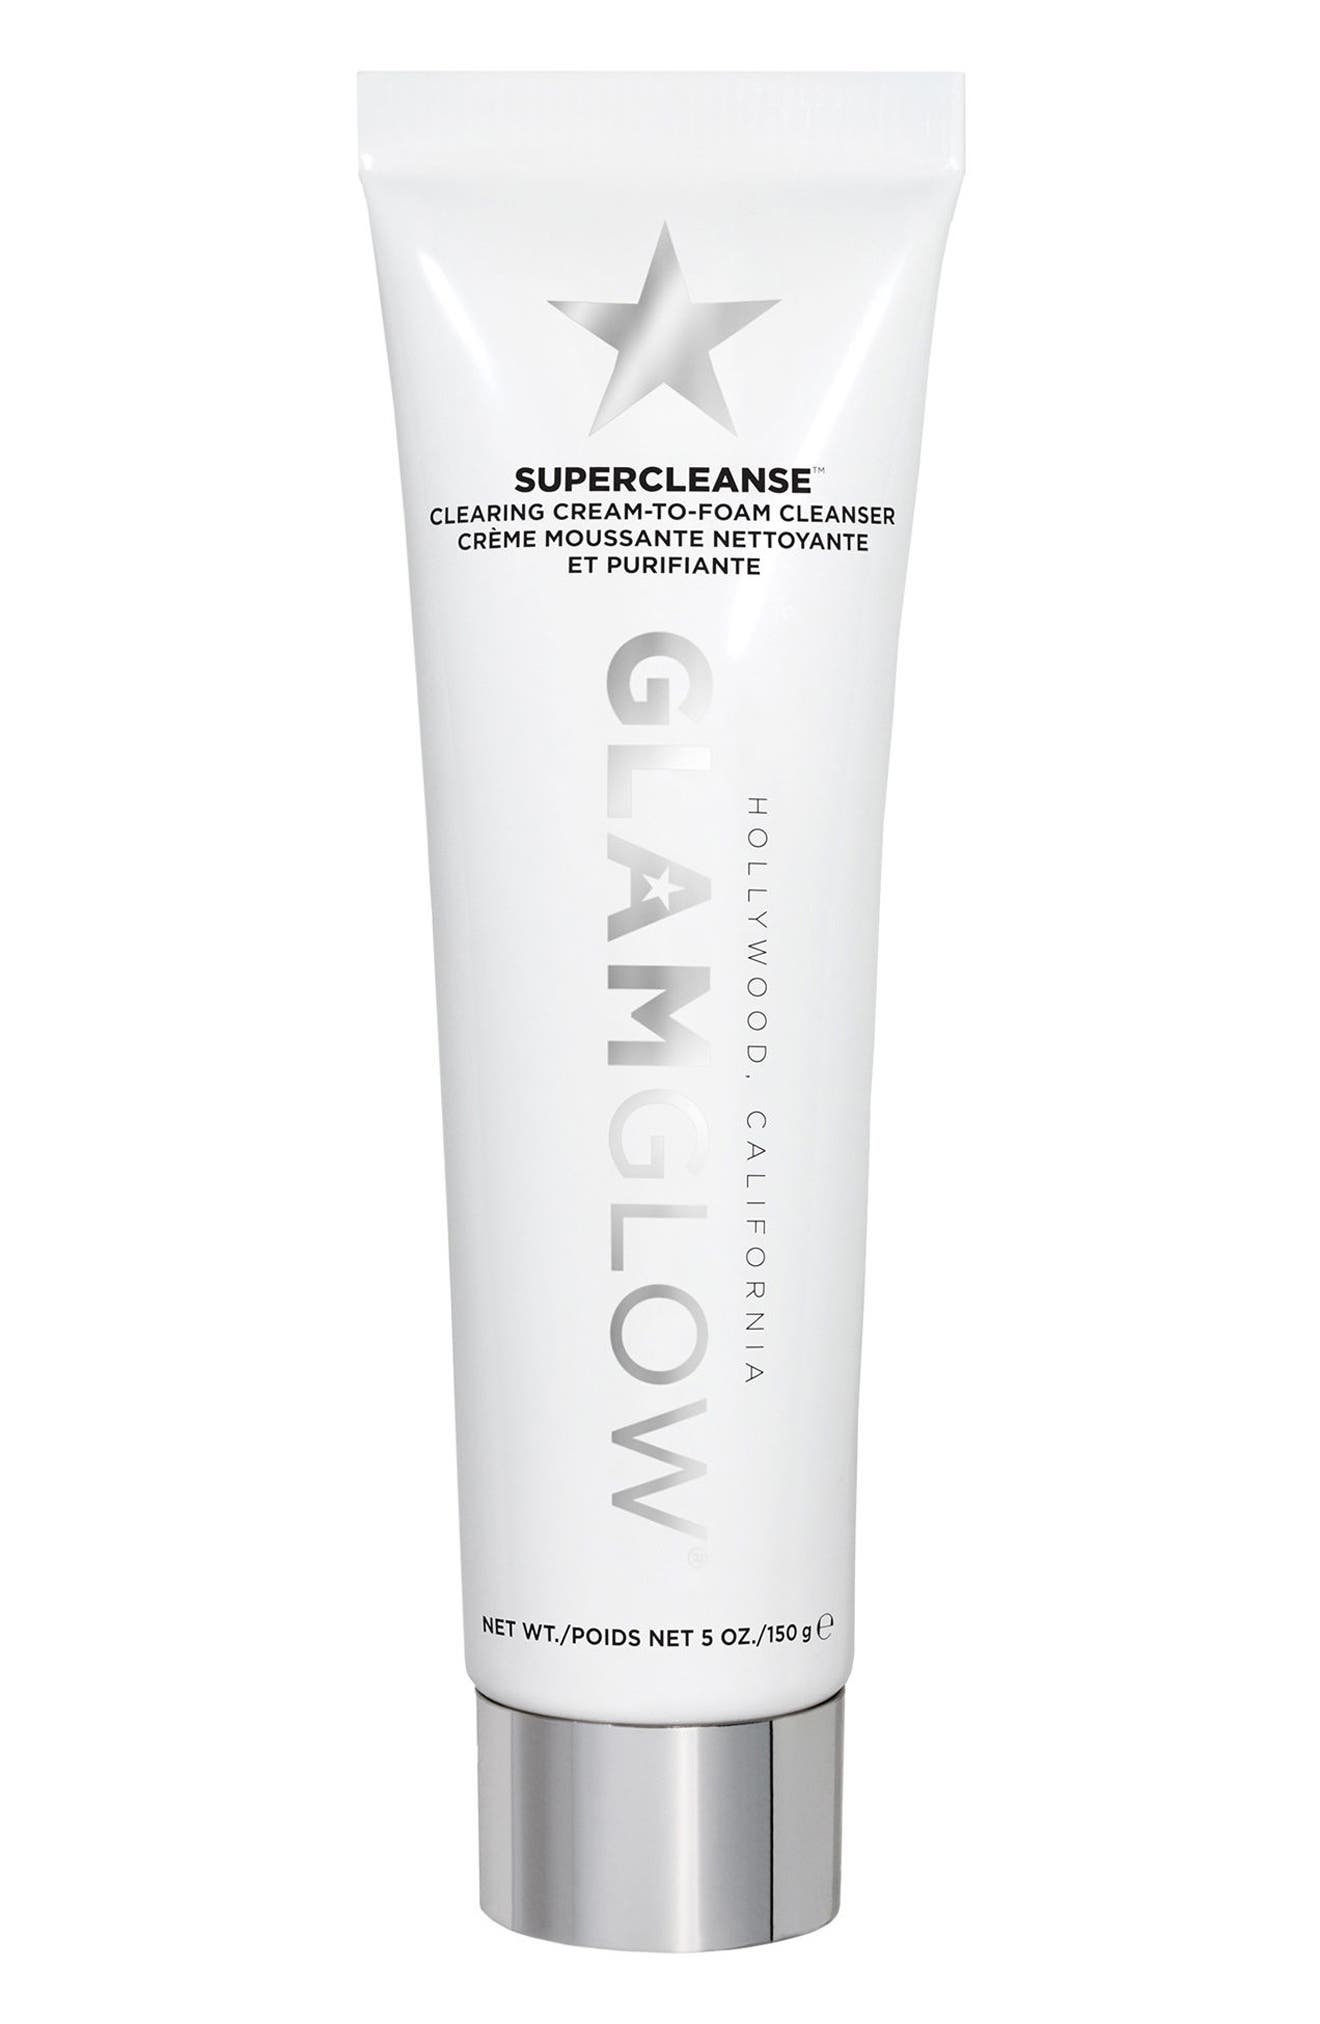 Alternate Image 1 Selected - GLAMGLOW® SUPERCLEANSE™ Clearing Cream-to-Foam Cleanser